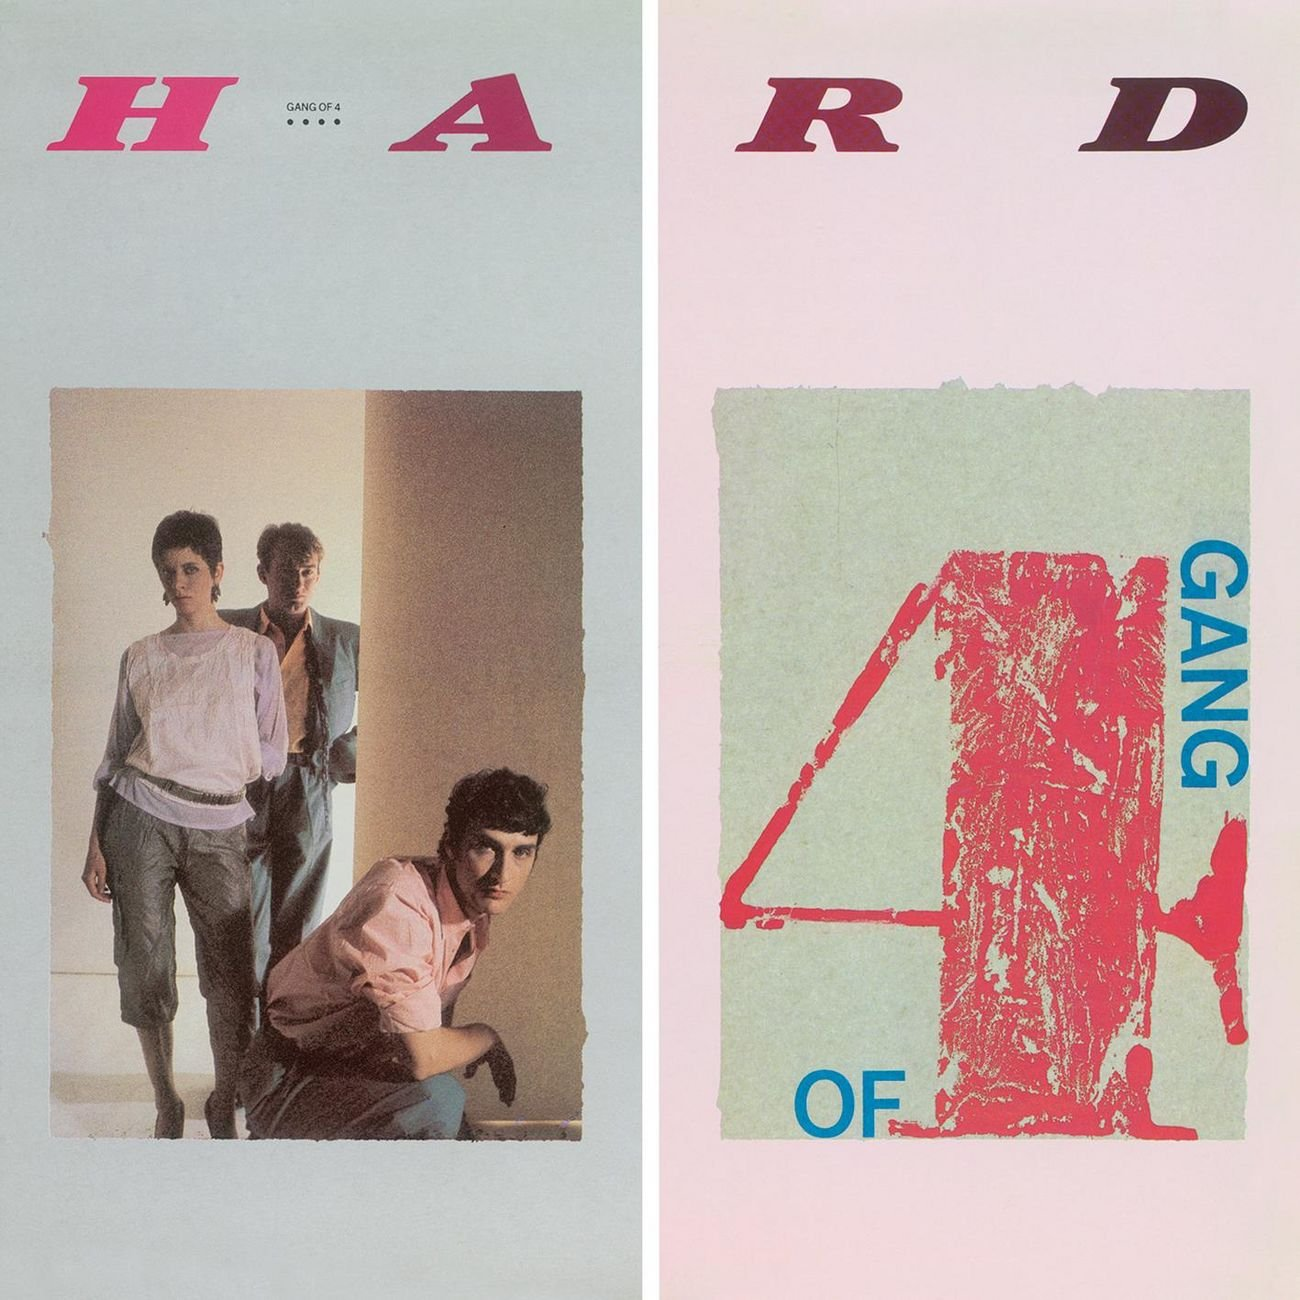 Gang of 4 Hard Album Cover - Adsum